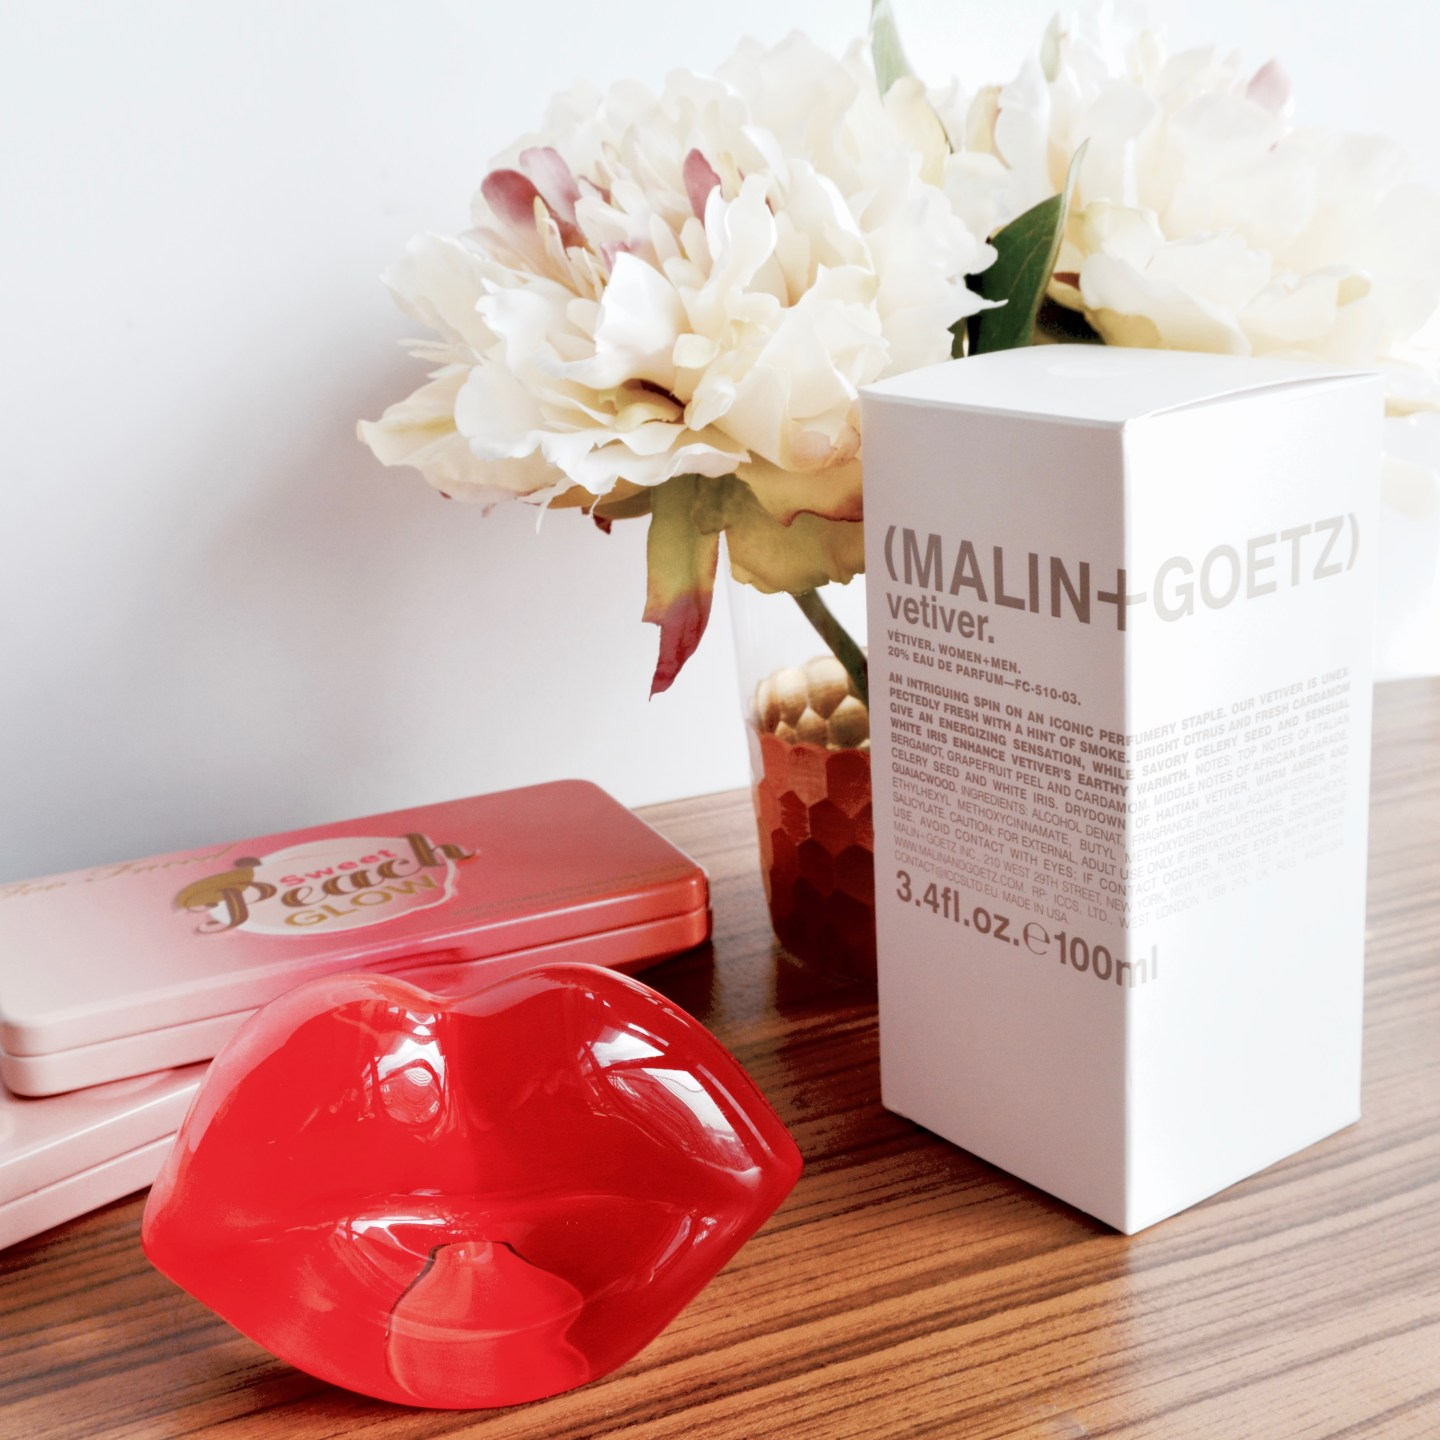 Friday Faves: Malin + Goetz Vetiver perfume and Amara homeware